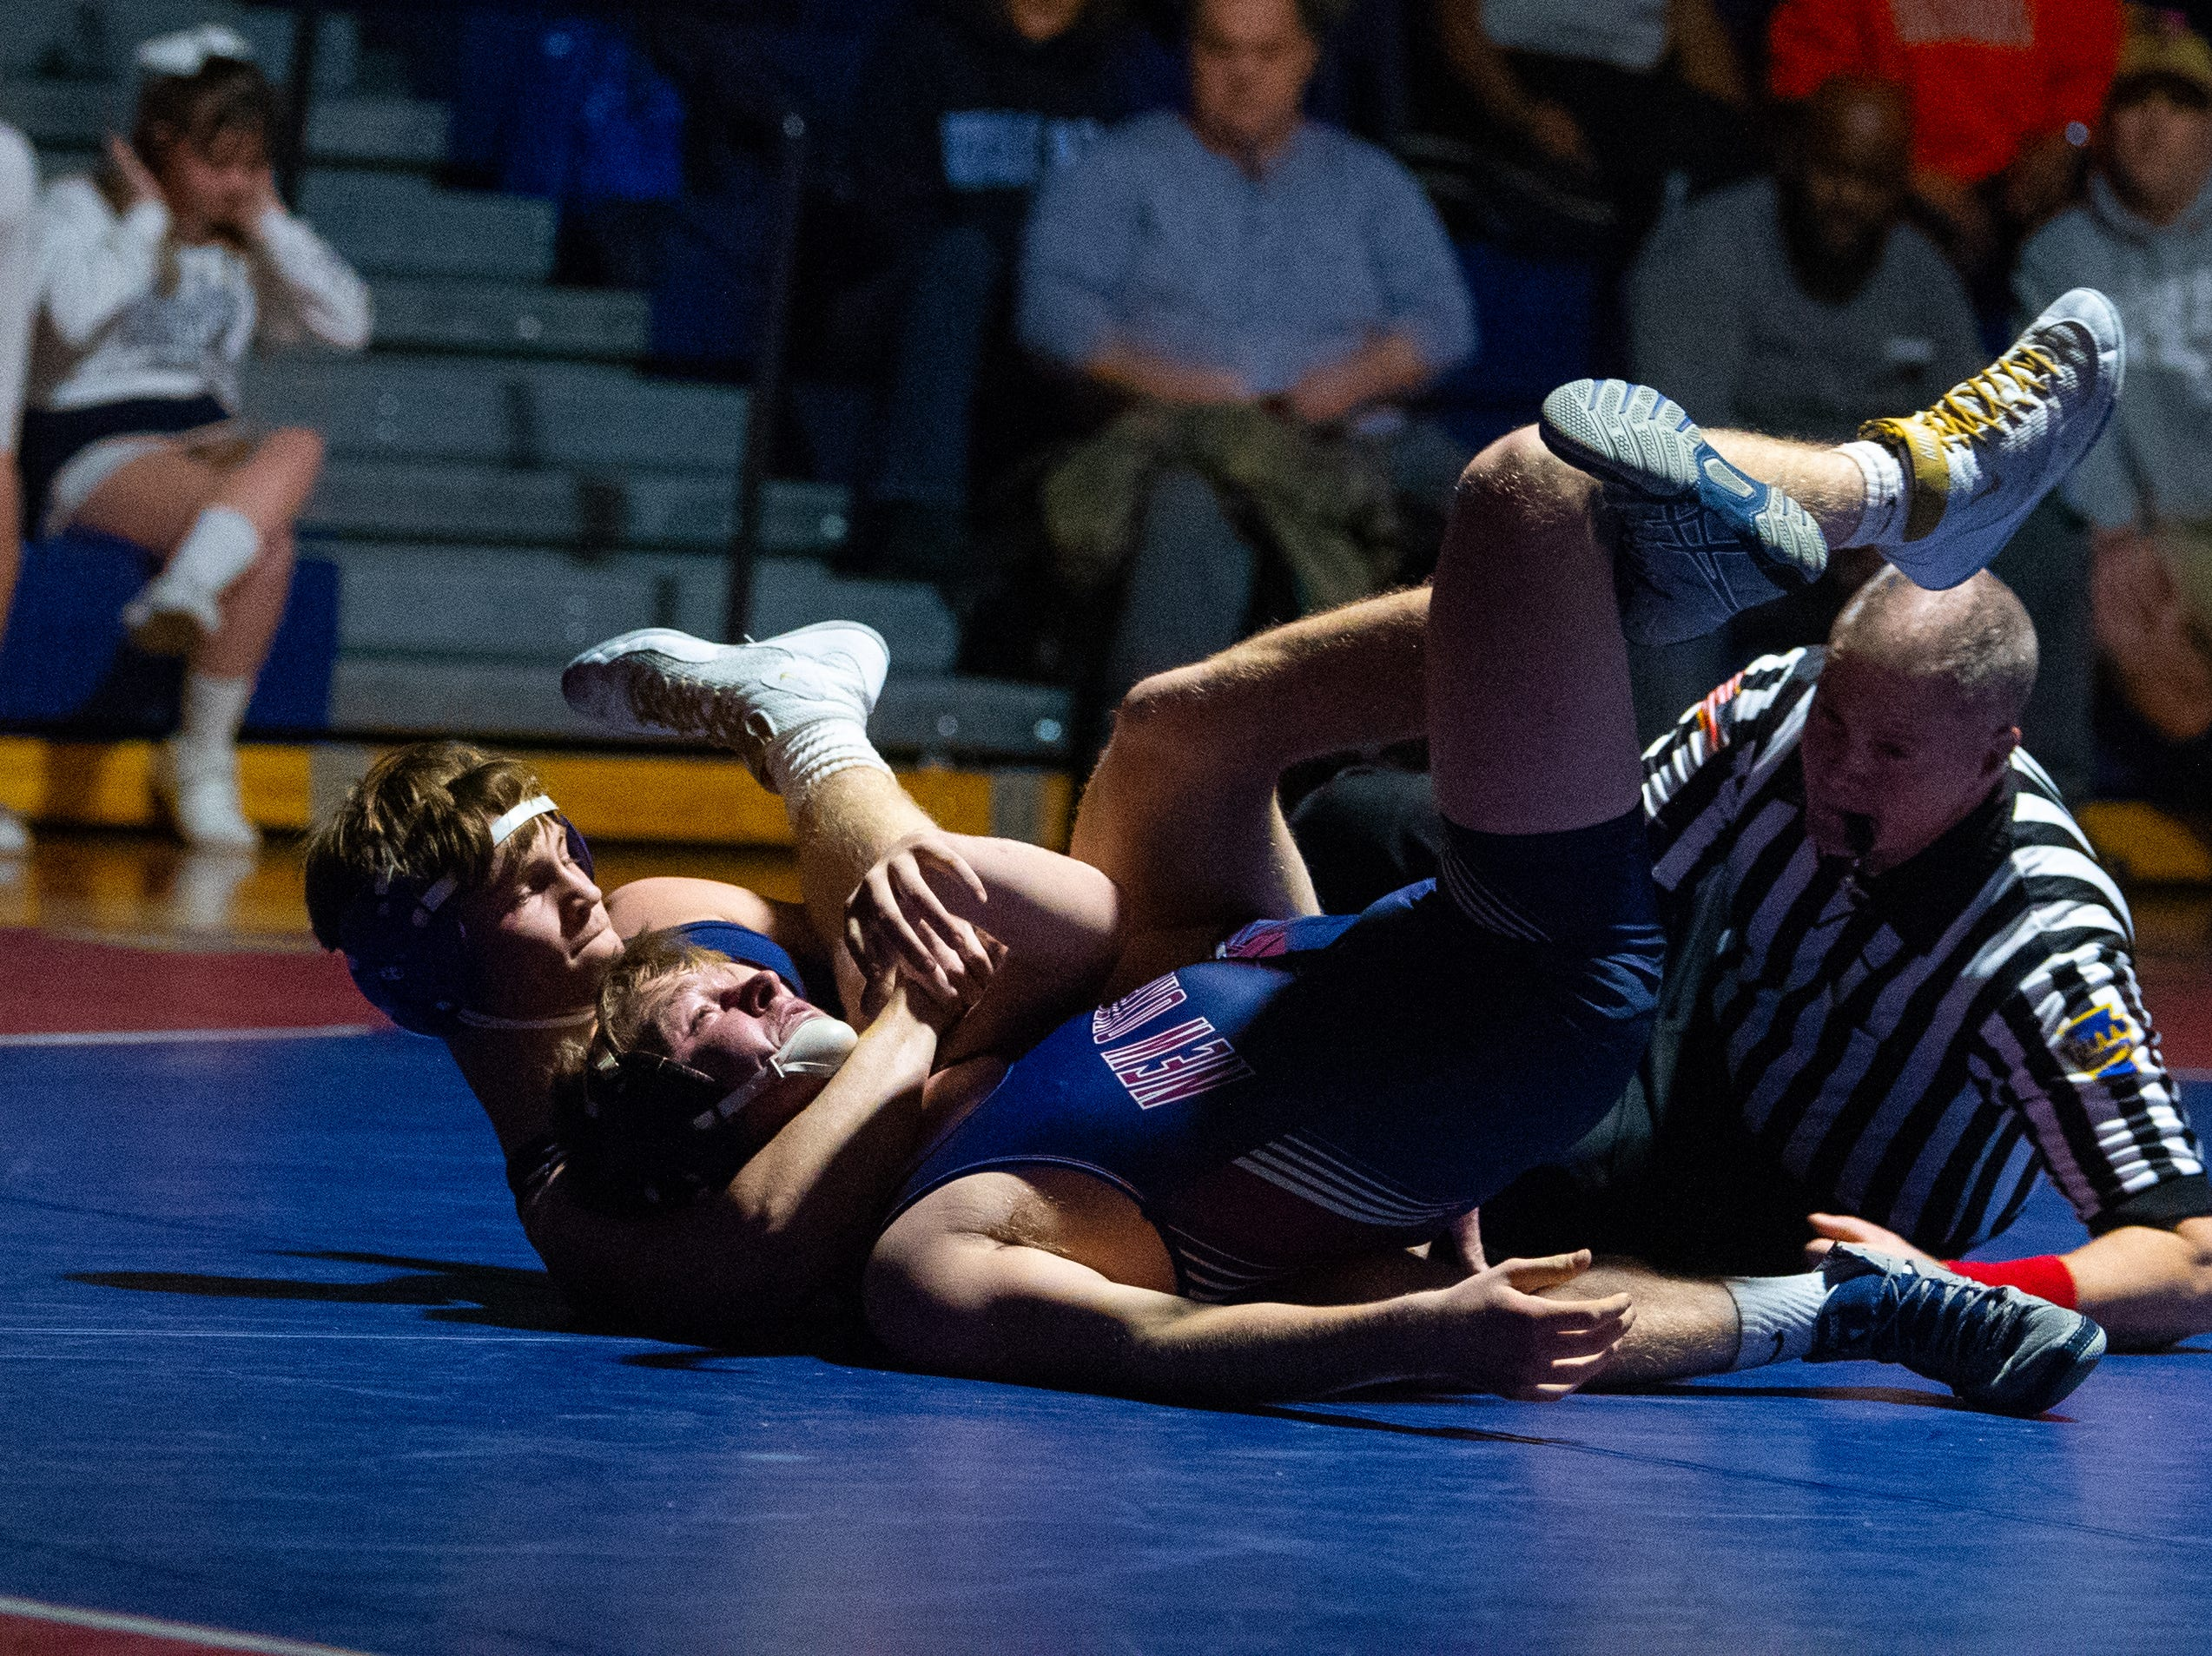 Dallastown's John Ligon locks up Kinser Laughman of New Oxford during the YAIAA Division I wrestling match, December 13, 2018. The Wildcats defeated the Colonials 40-20.